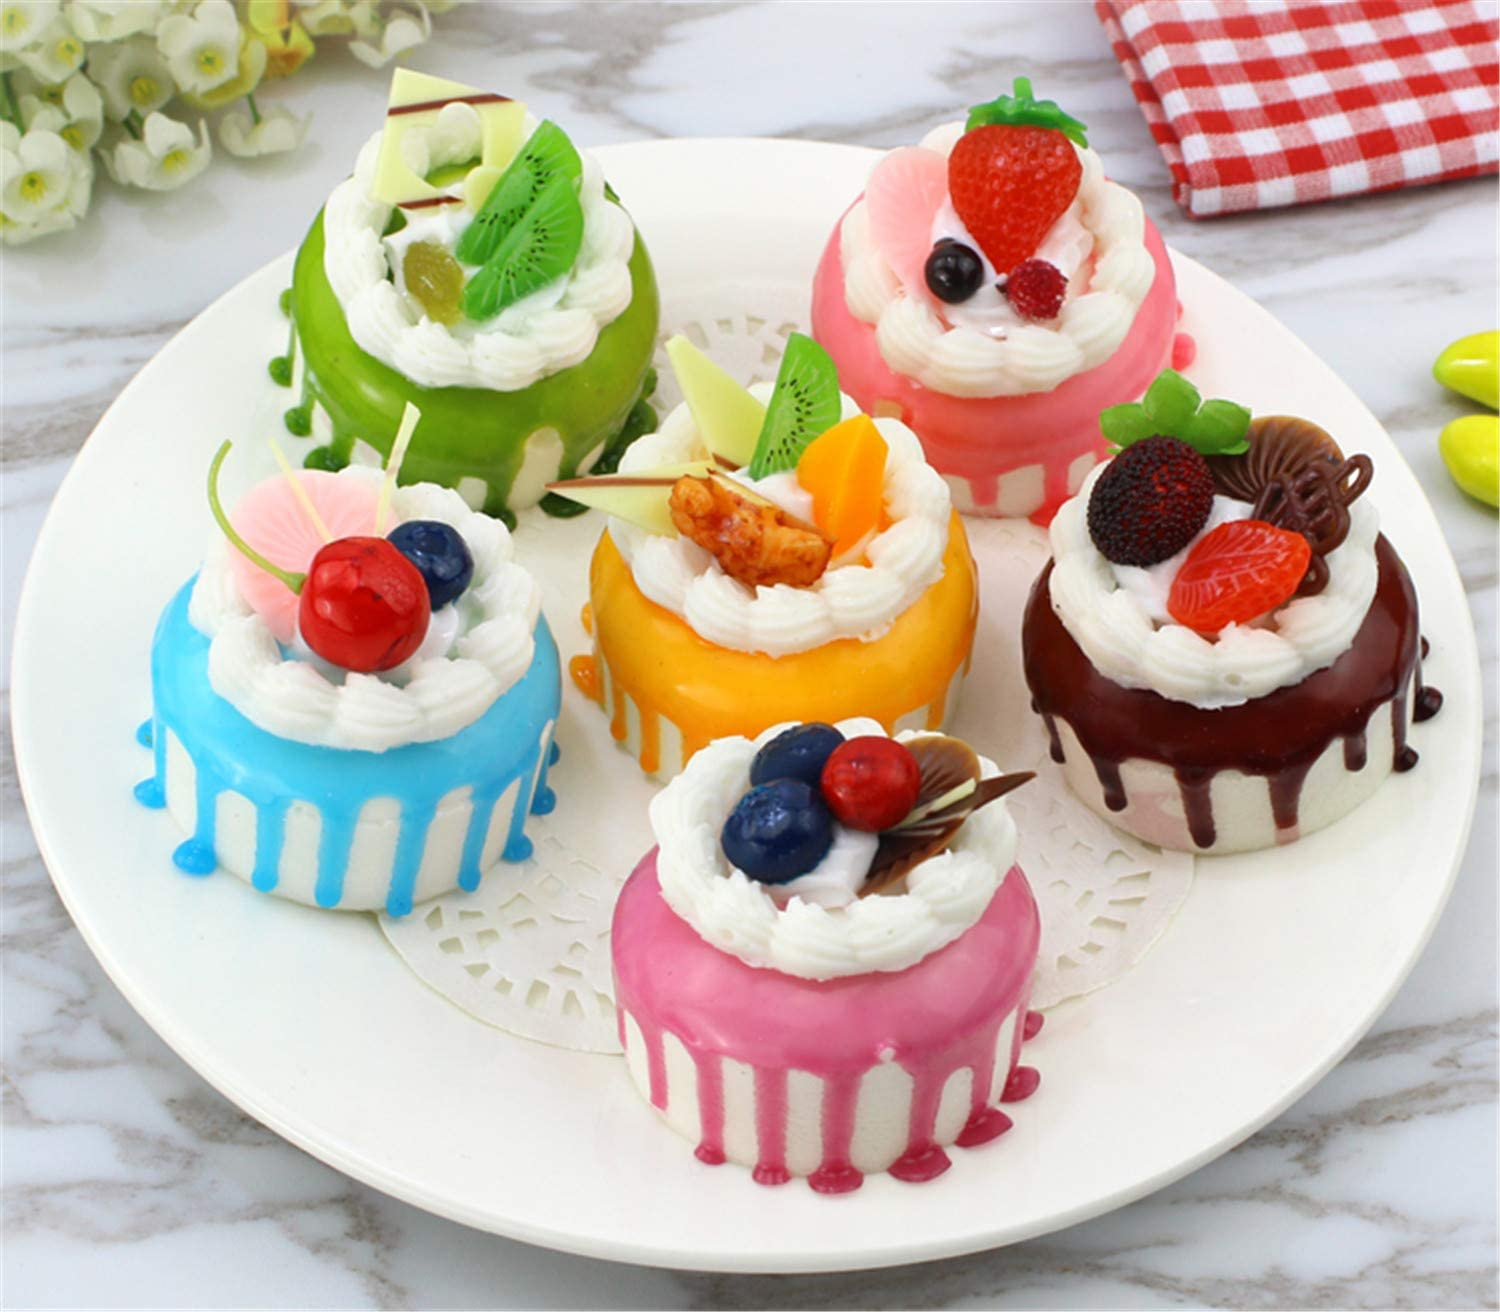 Skyseen 6pcs Realistic Artificial Simulation Cake Assorted Faux Fake Food Model Home Kitchen Staging Party Toy Dessert Photography Props Home Decoration Display Cake